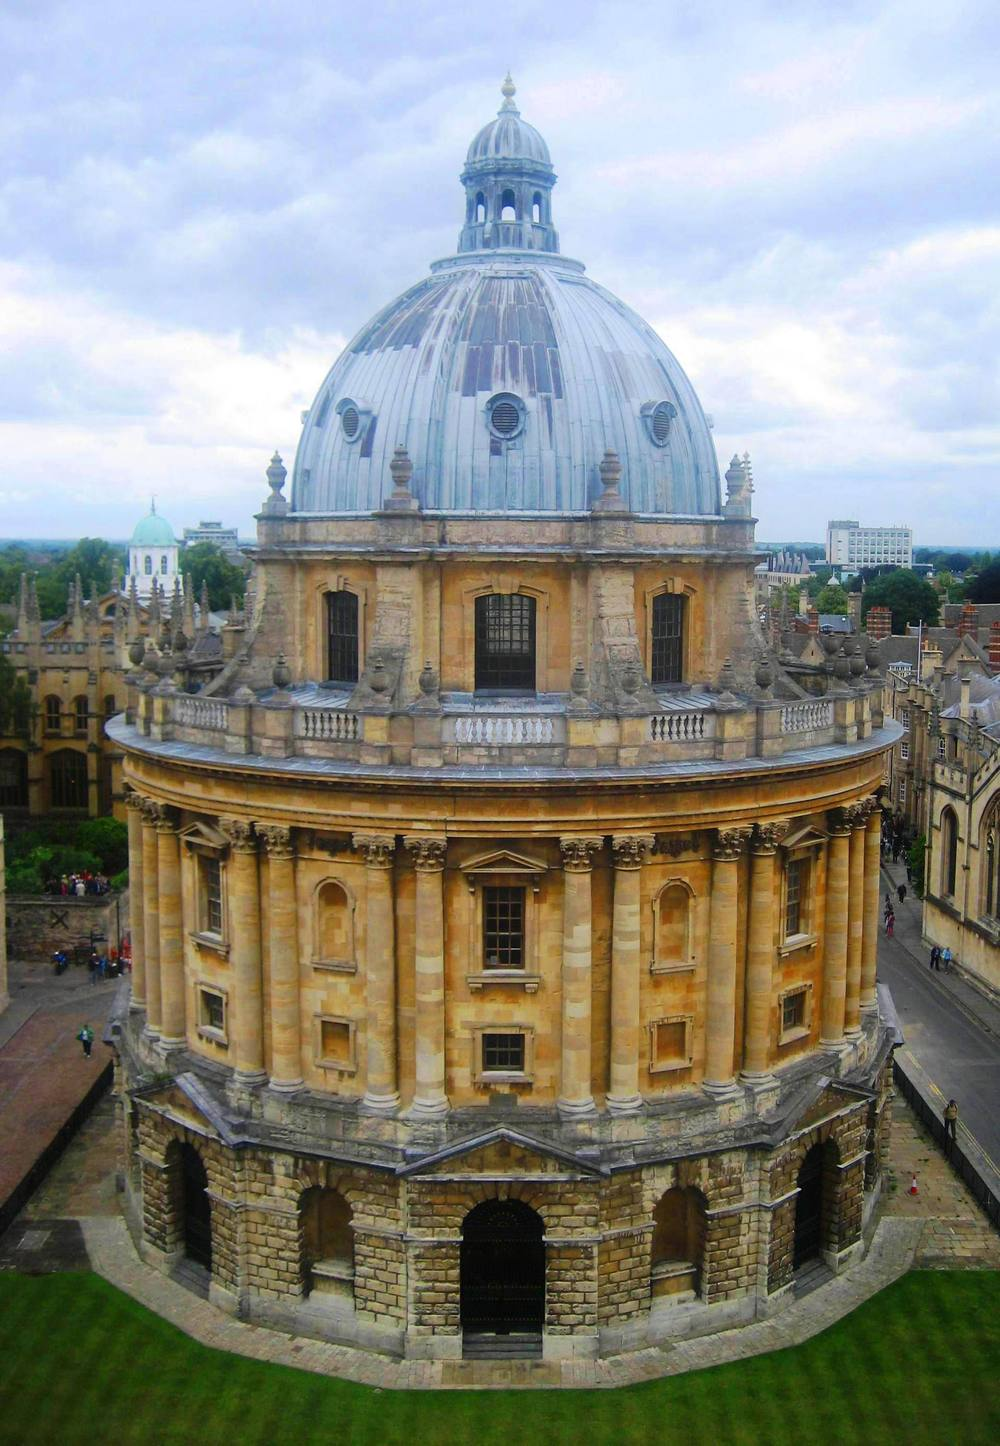 View of the Radcliffe Camera from the University Church Tower